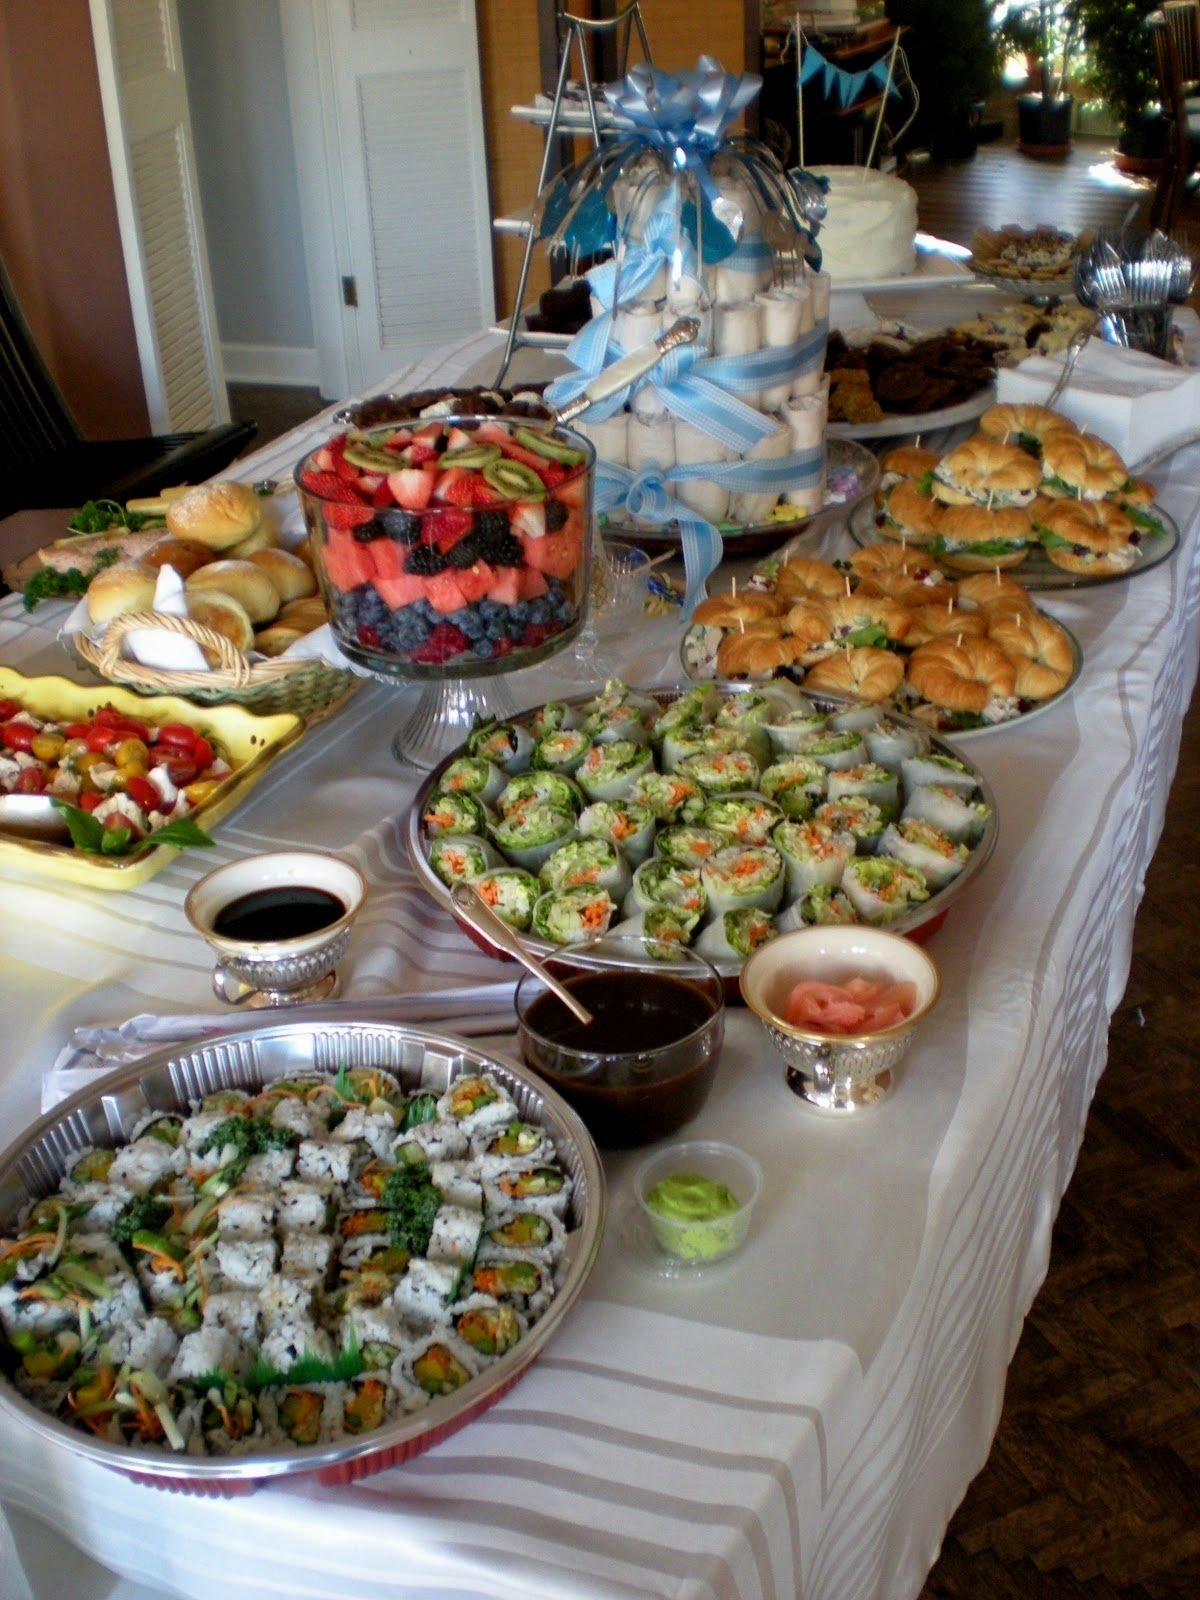 10 Attractive Baby Shower Food Ideas For A Boy frightening baby shower food menu ideas recipes finger brunch 1 2020